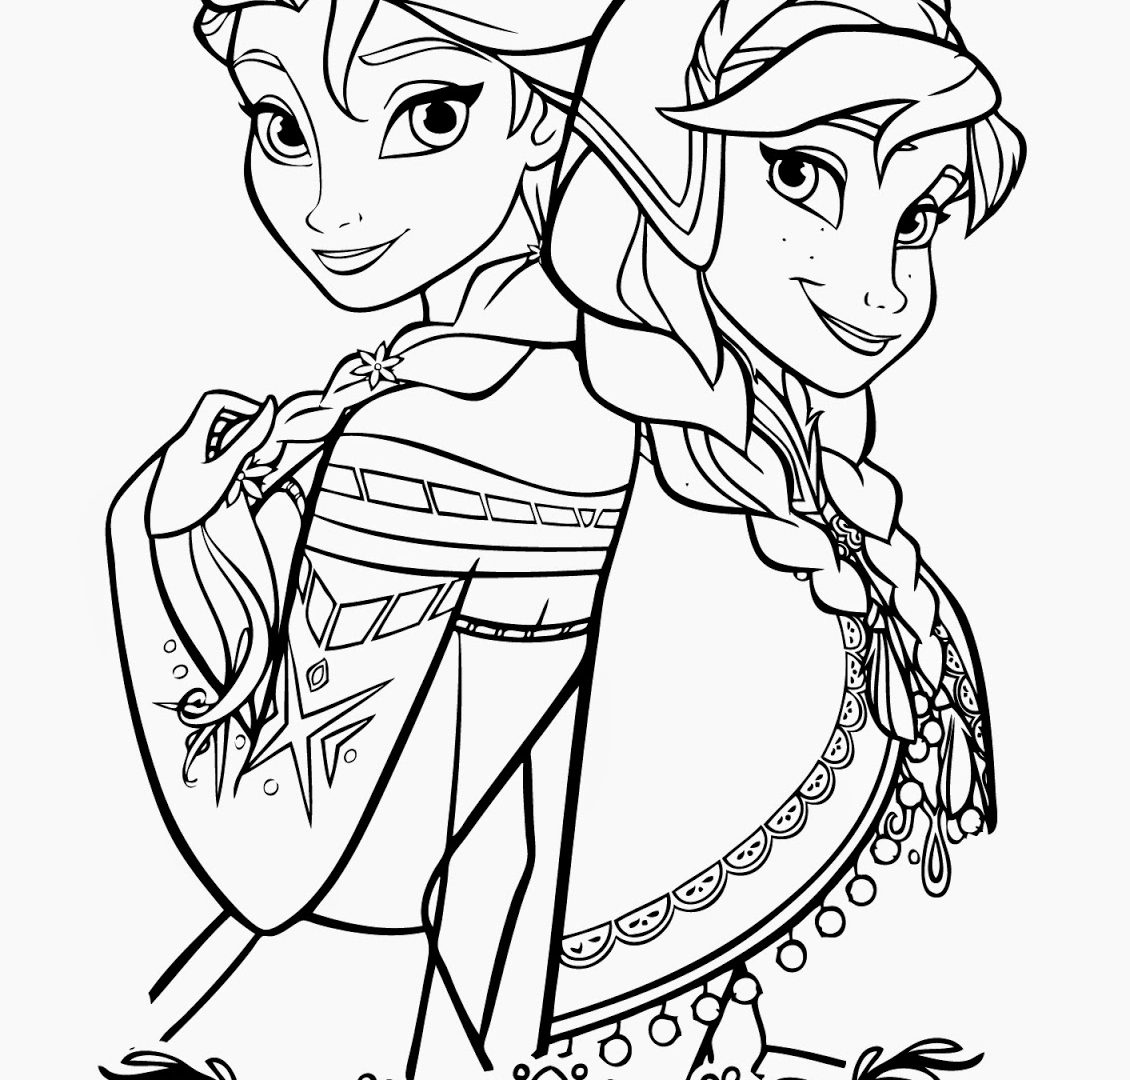 1130x1080 Anna Coloring Pages Frozen Disney Elsa And Cartoons Printable